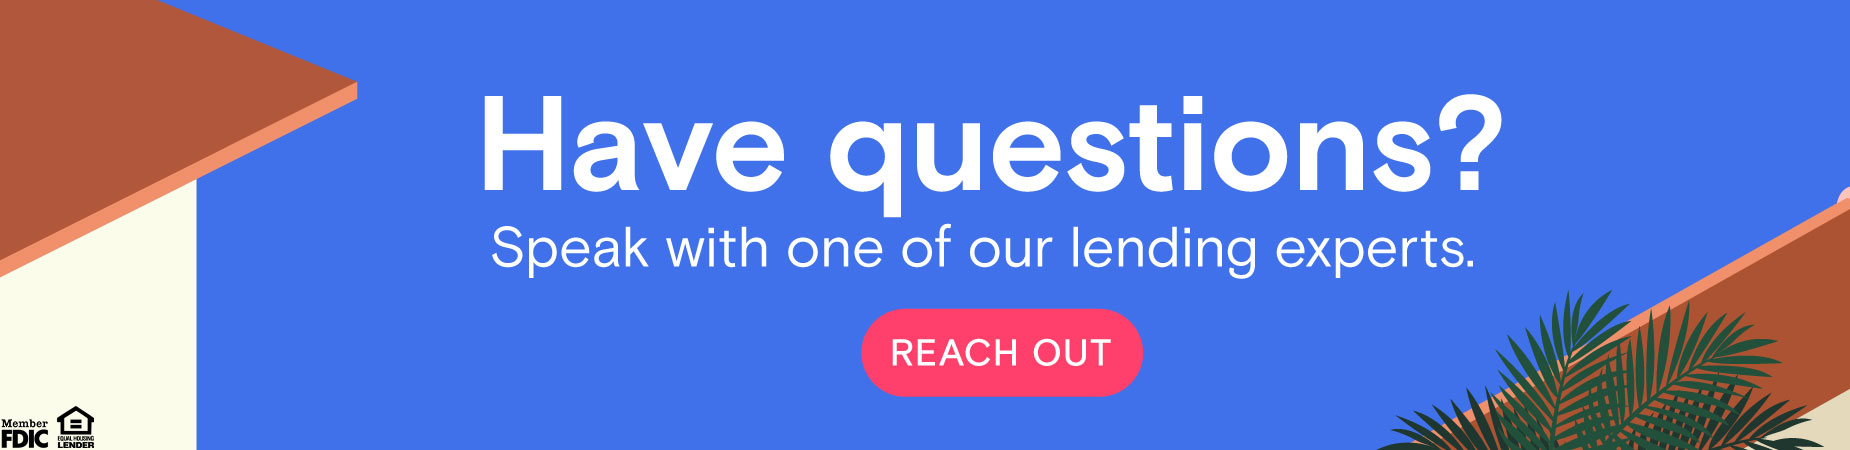 Have questions? Reach out to one of our lending experts.